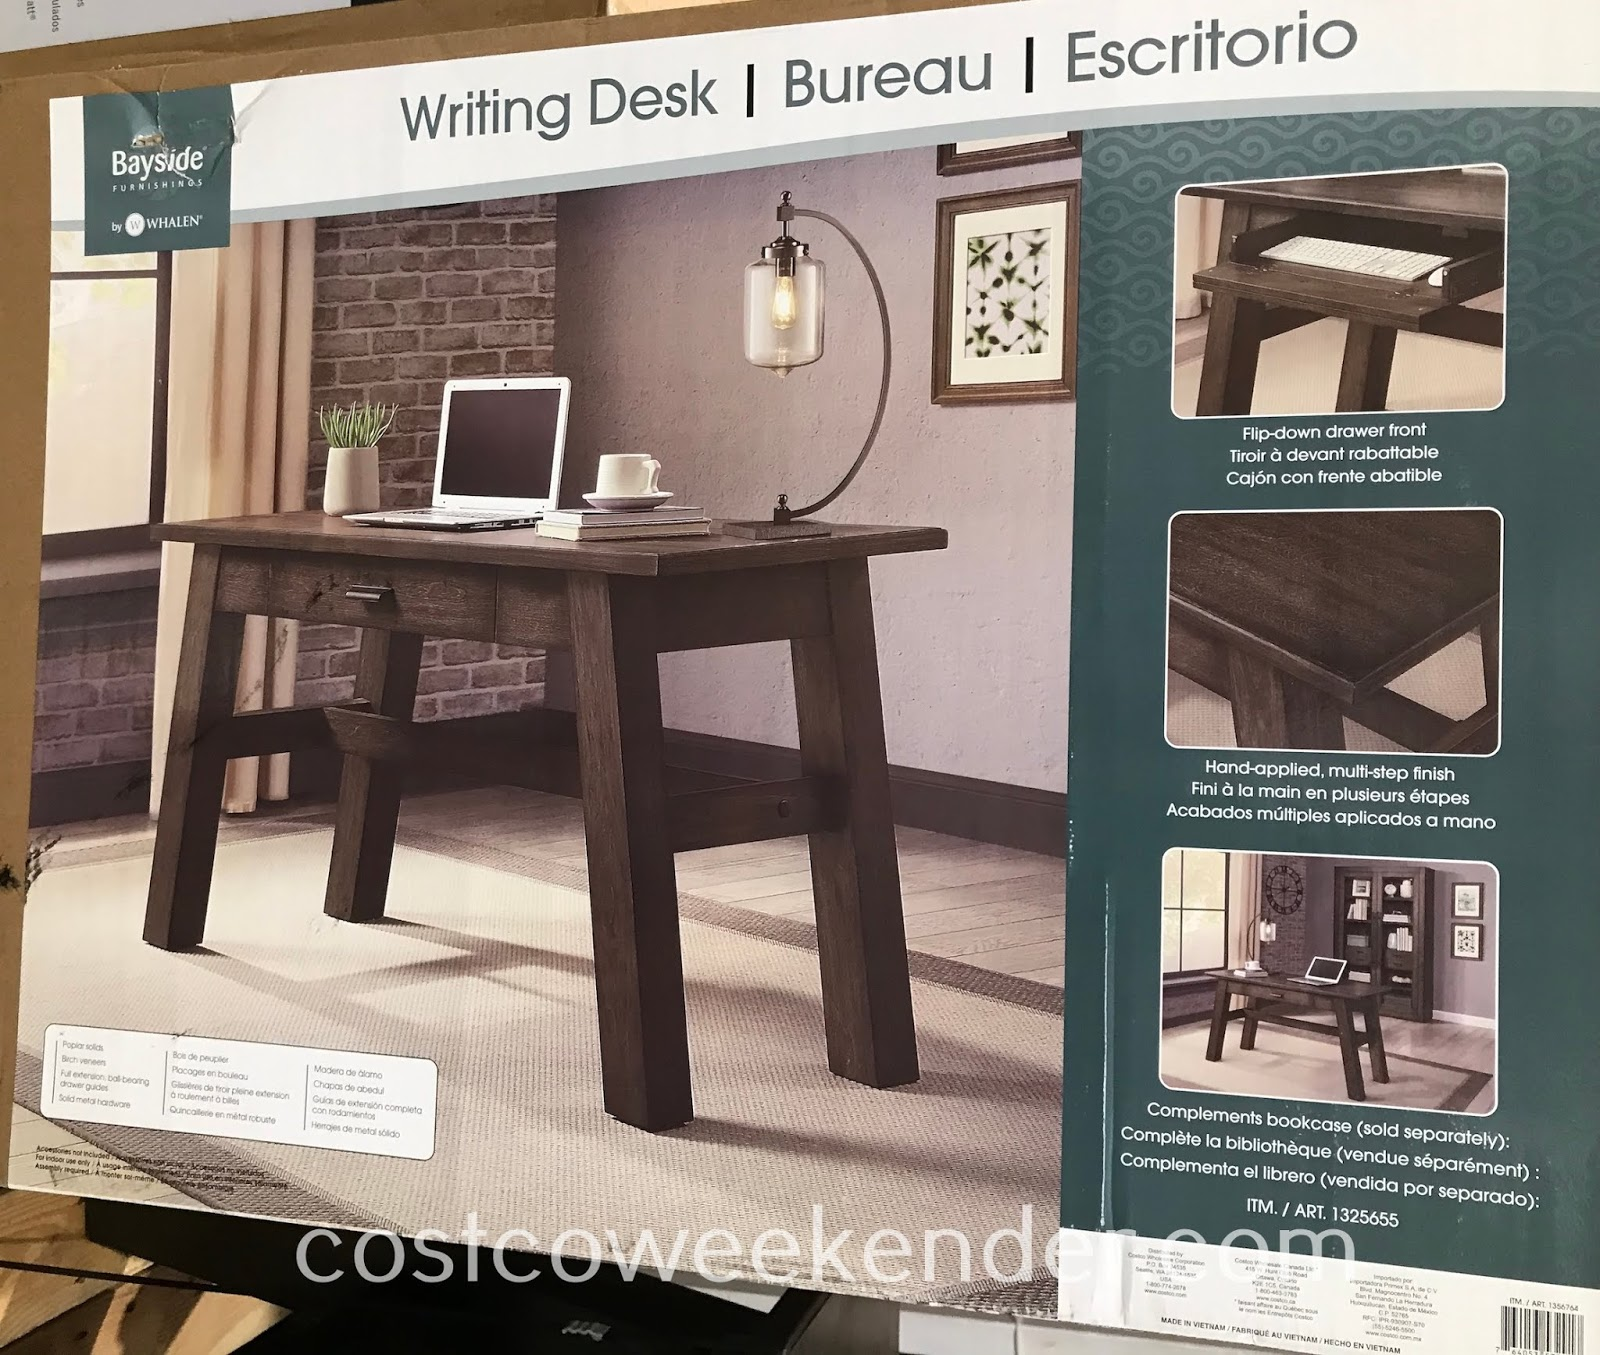 Costco 1356764 - Bayside Furnishings East Hill Writing Desk: great for any home